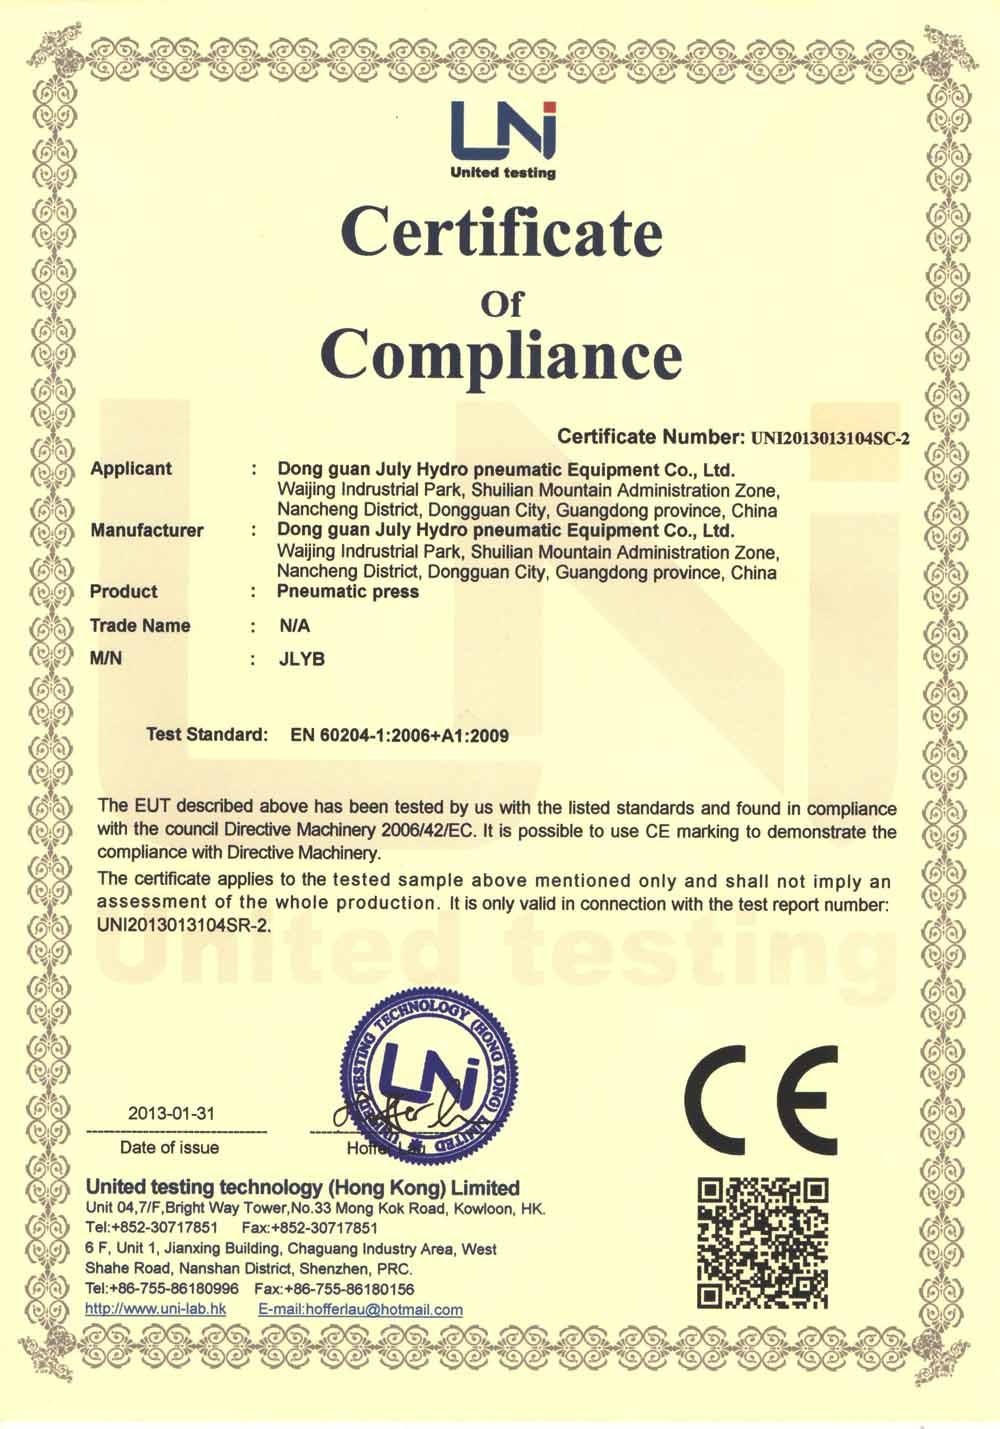 Company Overview - Dongguan Julyr Industrial Investment Limited